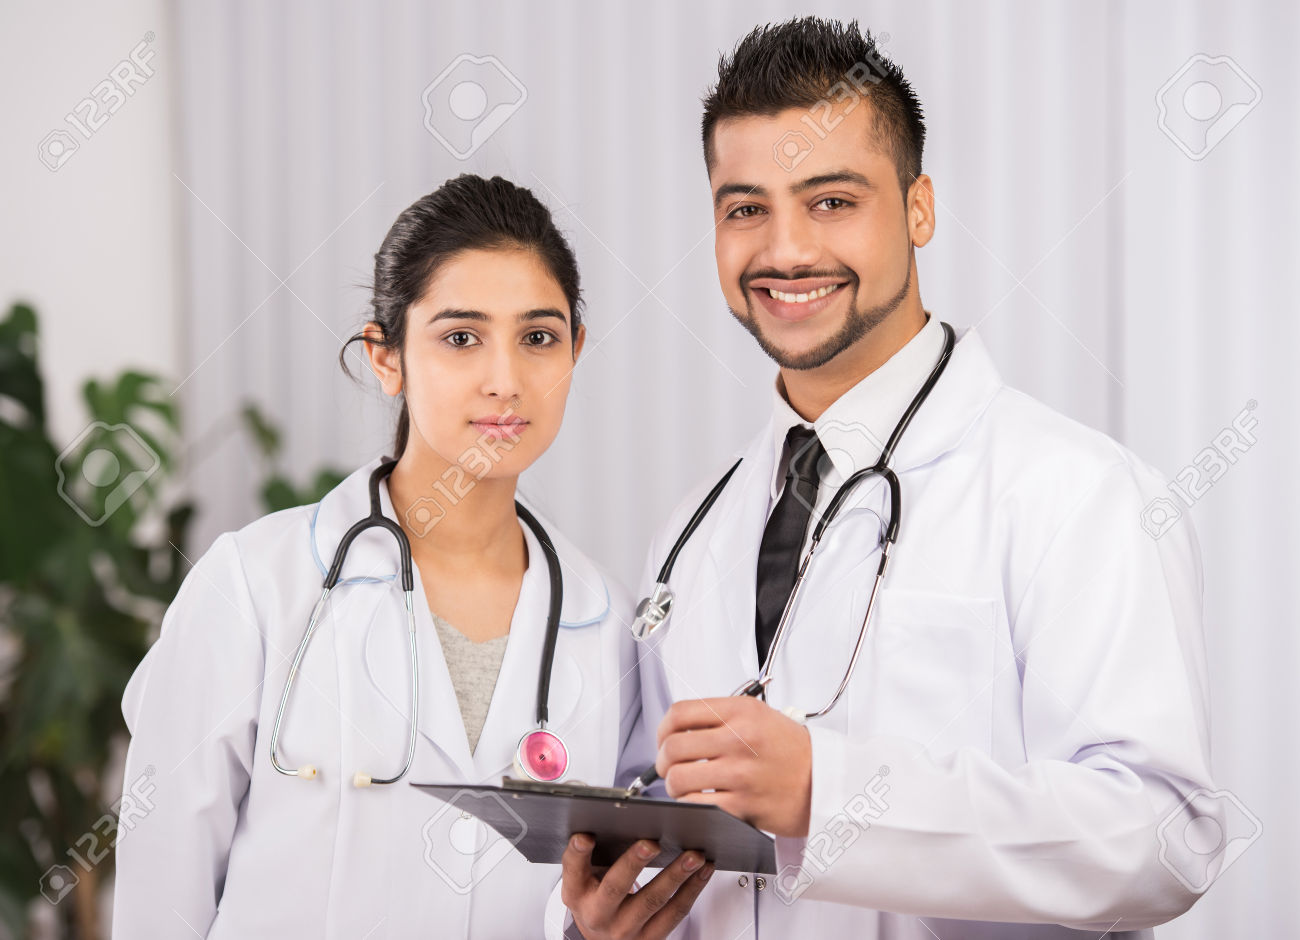 Dating A Doctor As A Nurse